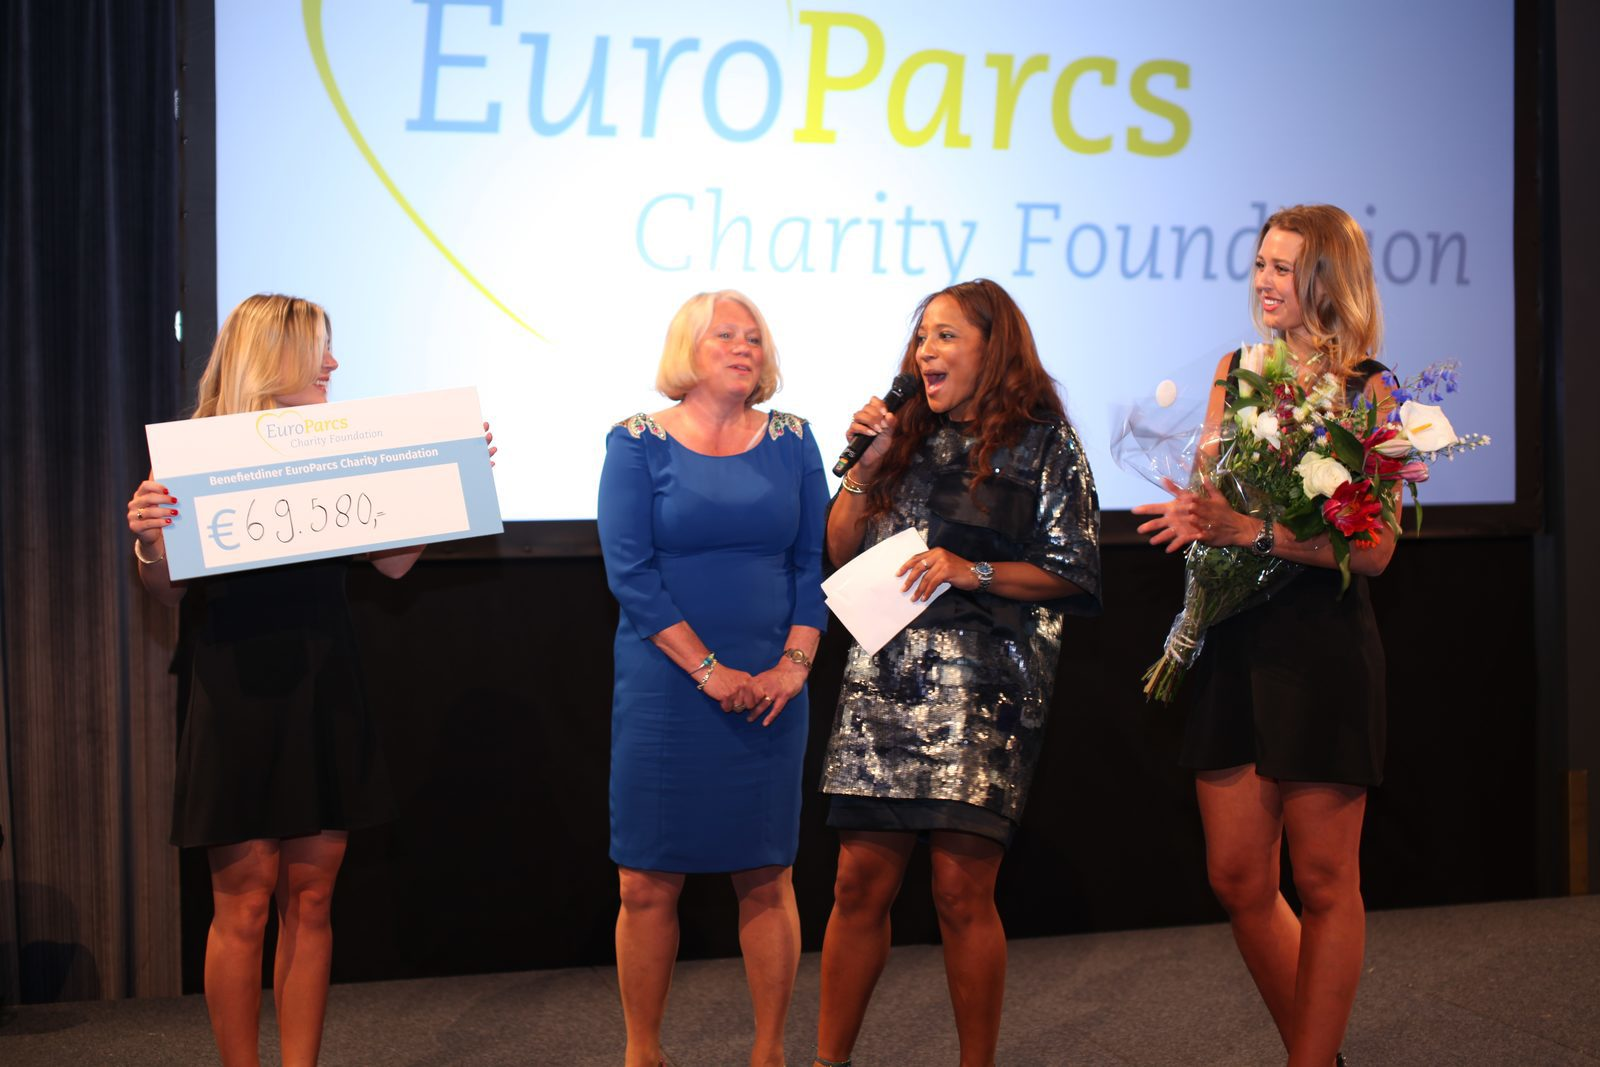 Value of Europarcs Charity Foundation Clear to EuroParcs